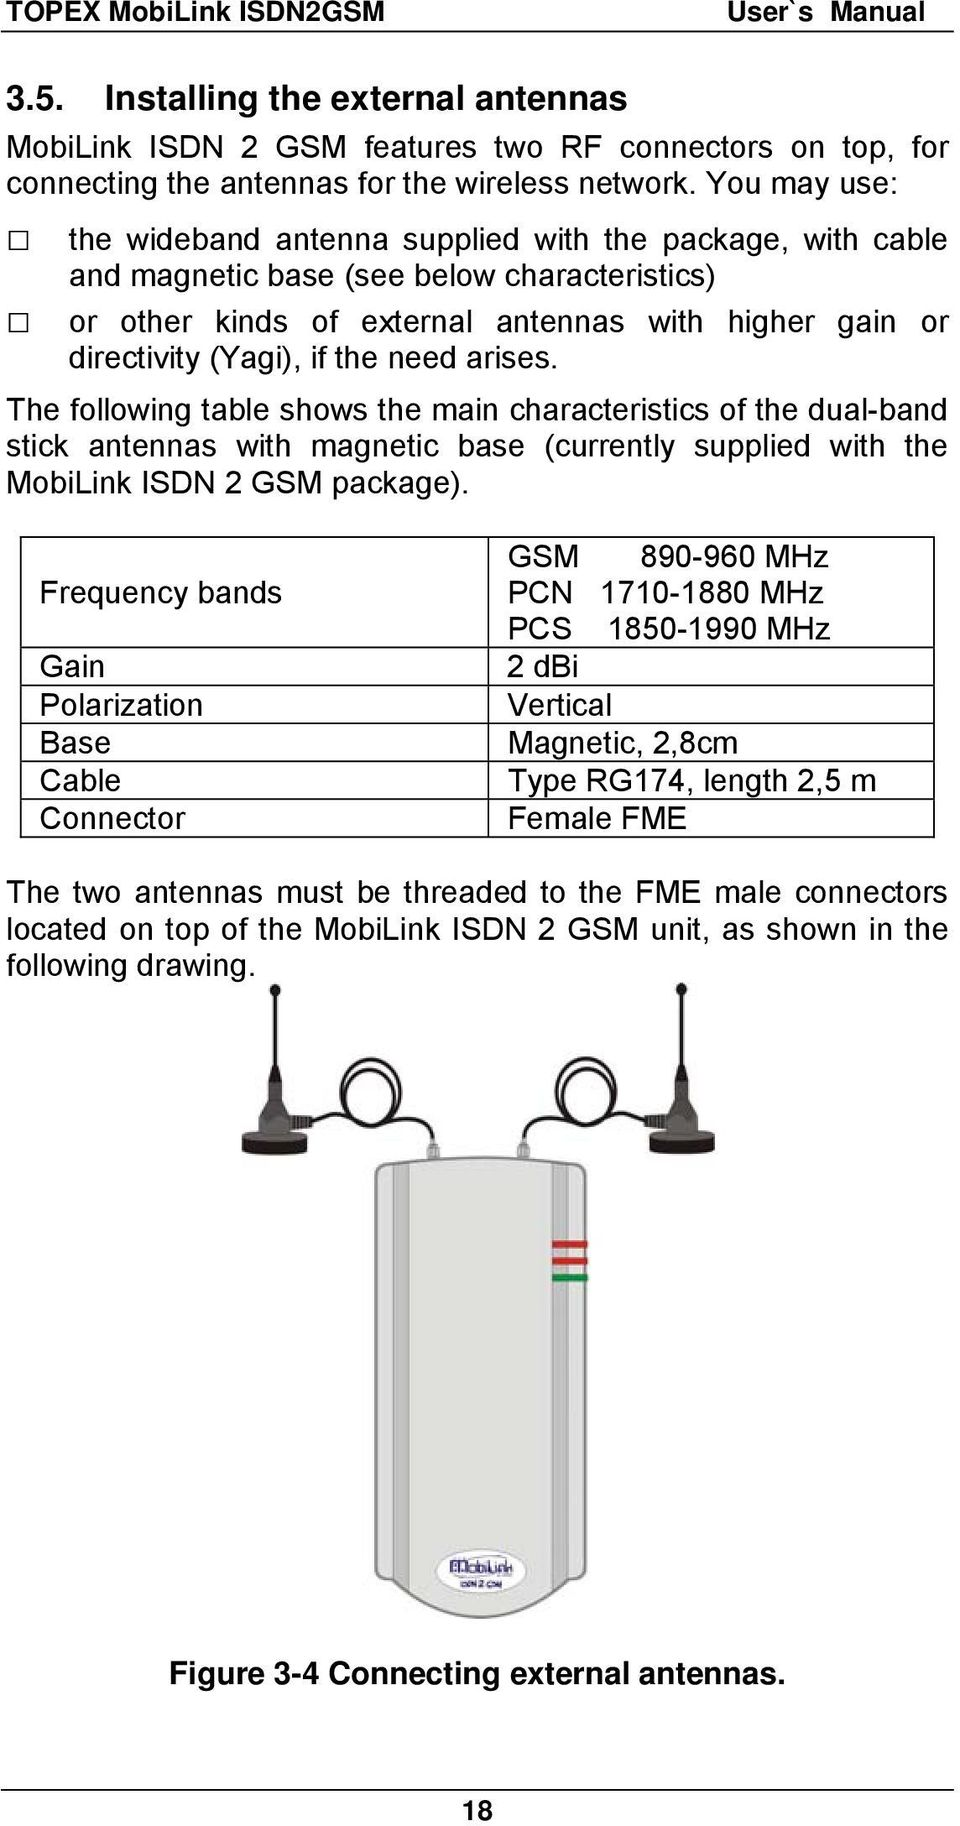 the need arises. The following table shows the main characteristics of the dual-band stick antennas with magnetic base (currently supplied with the MobiLink ISDN 2 GSM package).